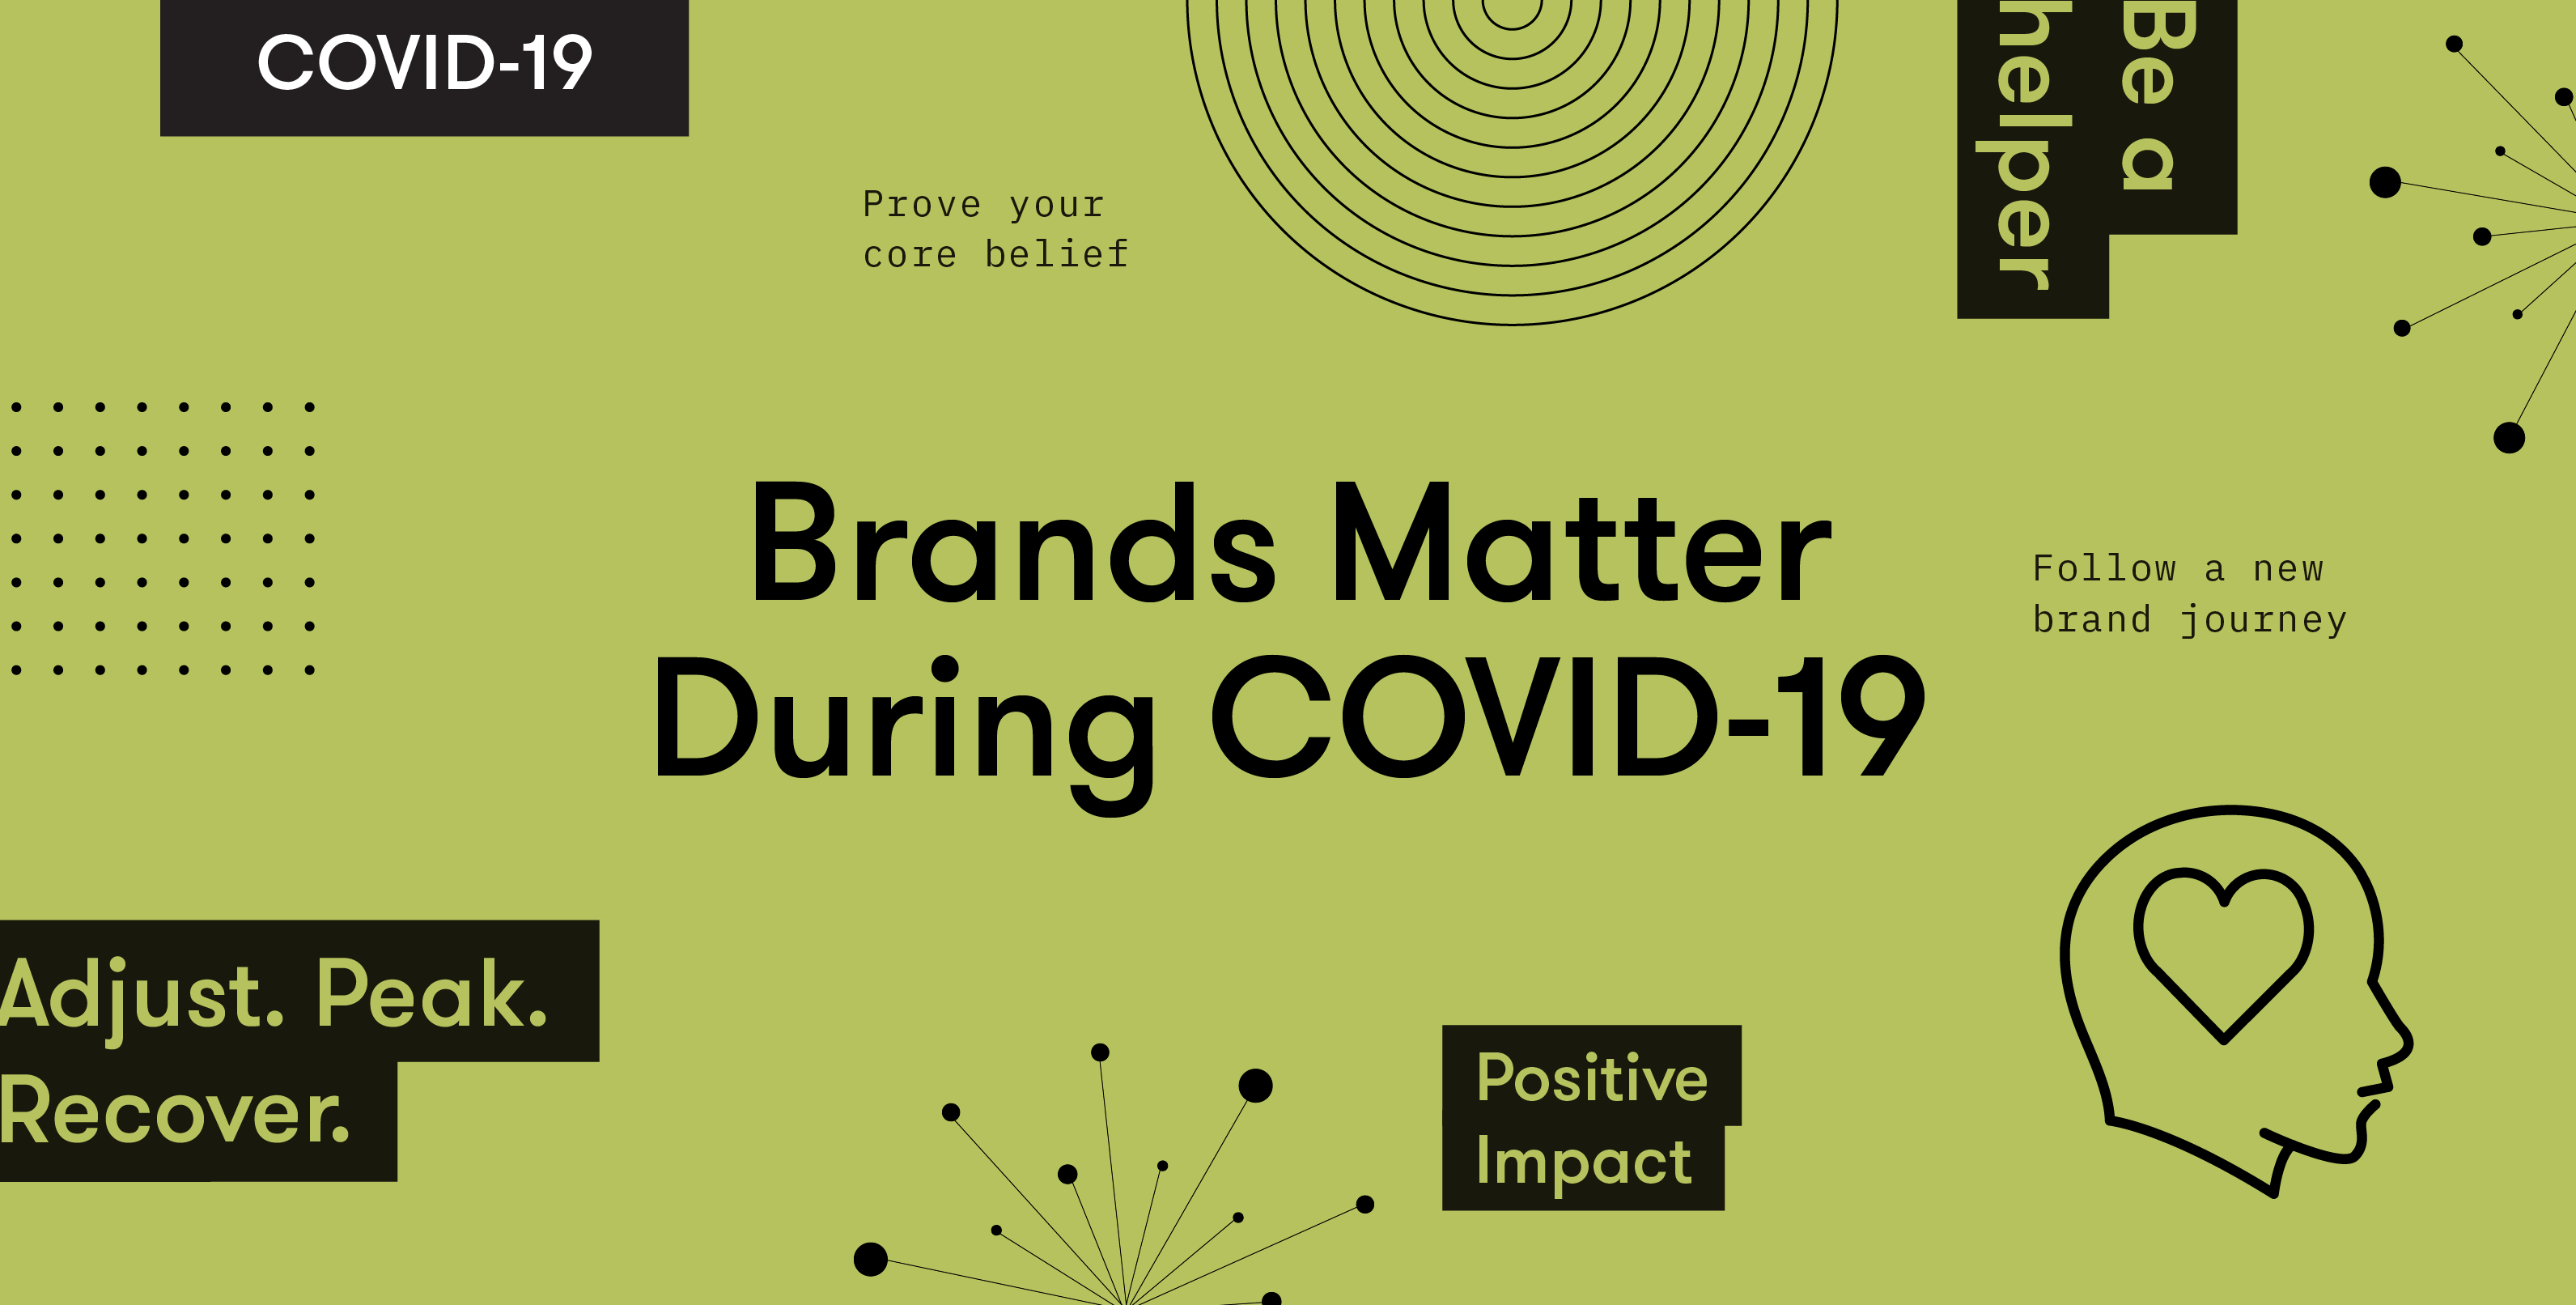 Brands matter: Three ways useful brands connect with consumers during crisis